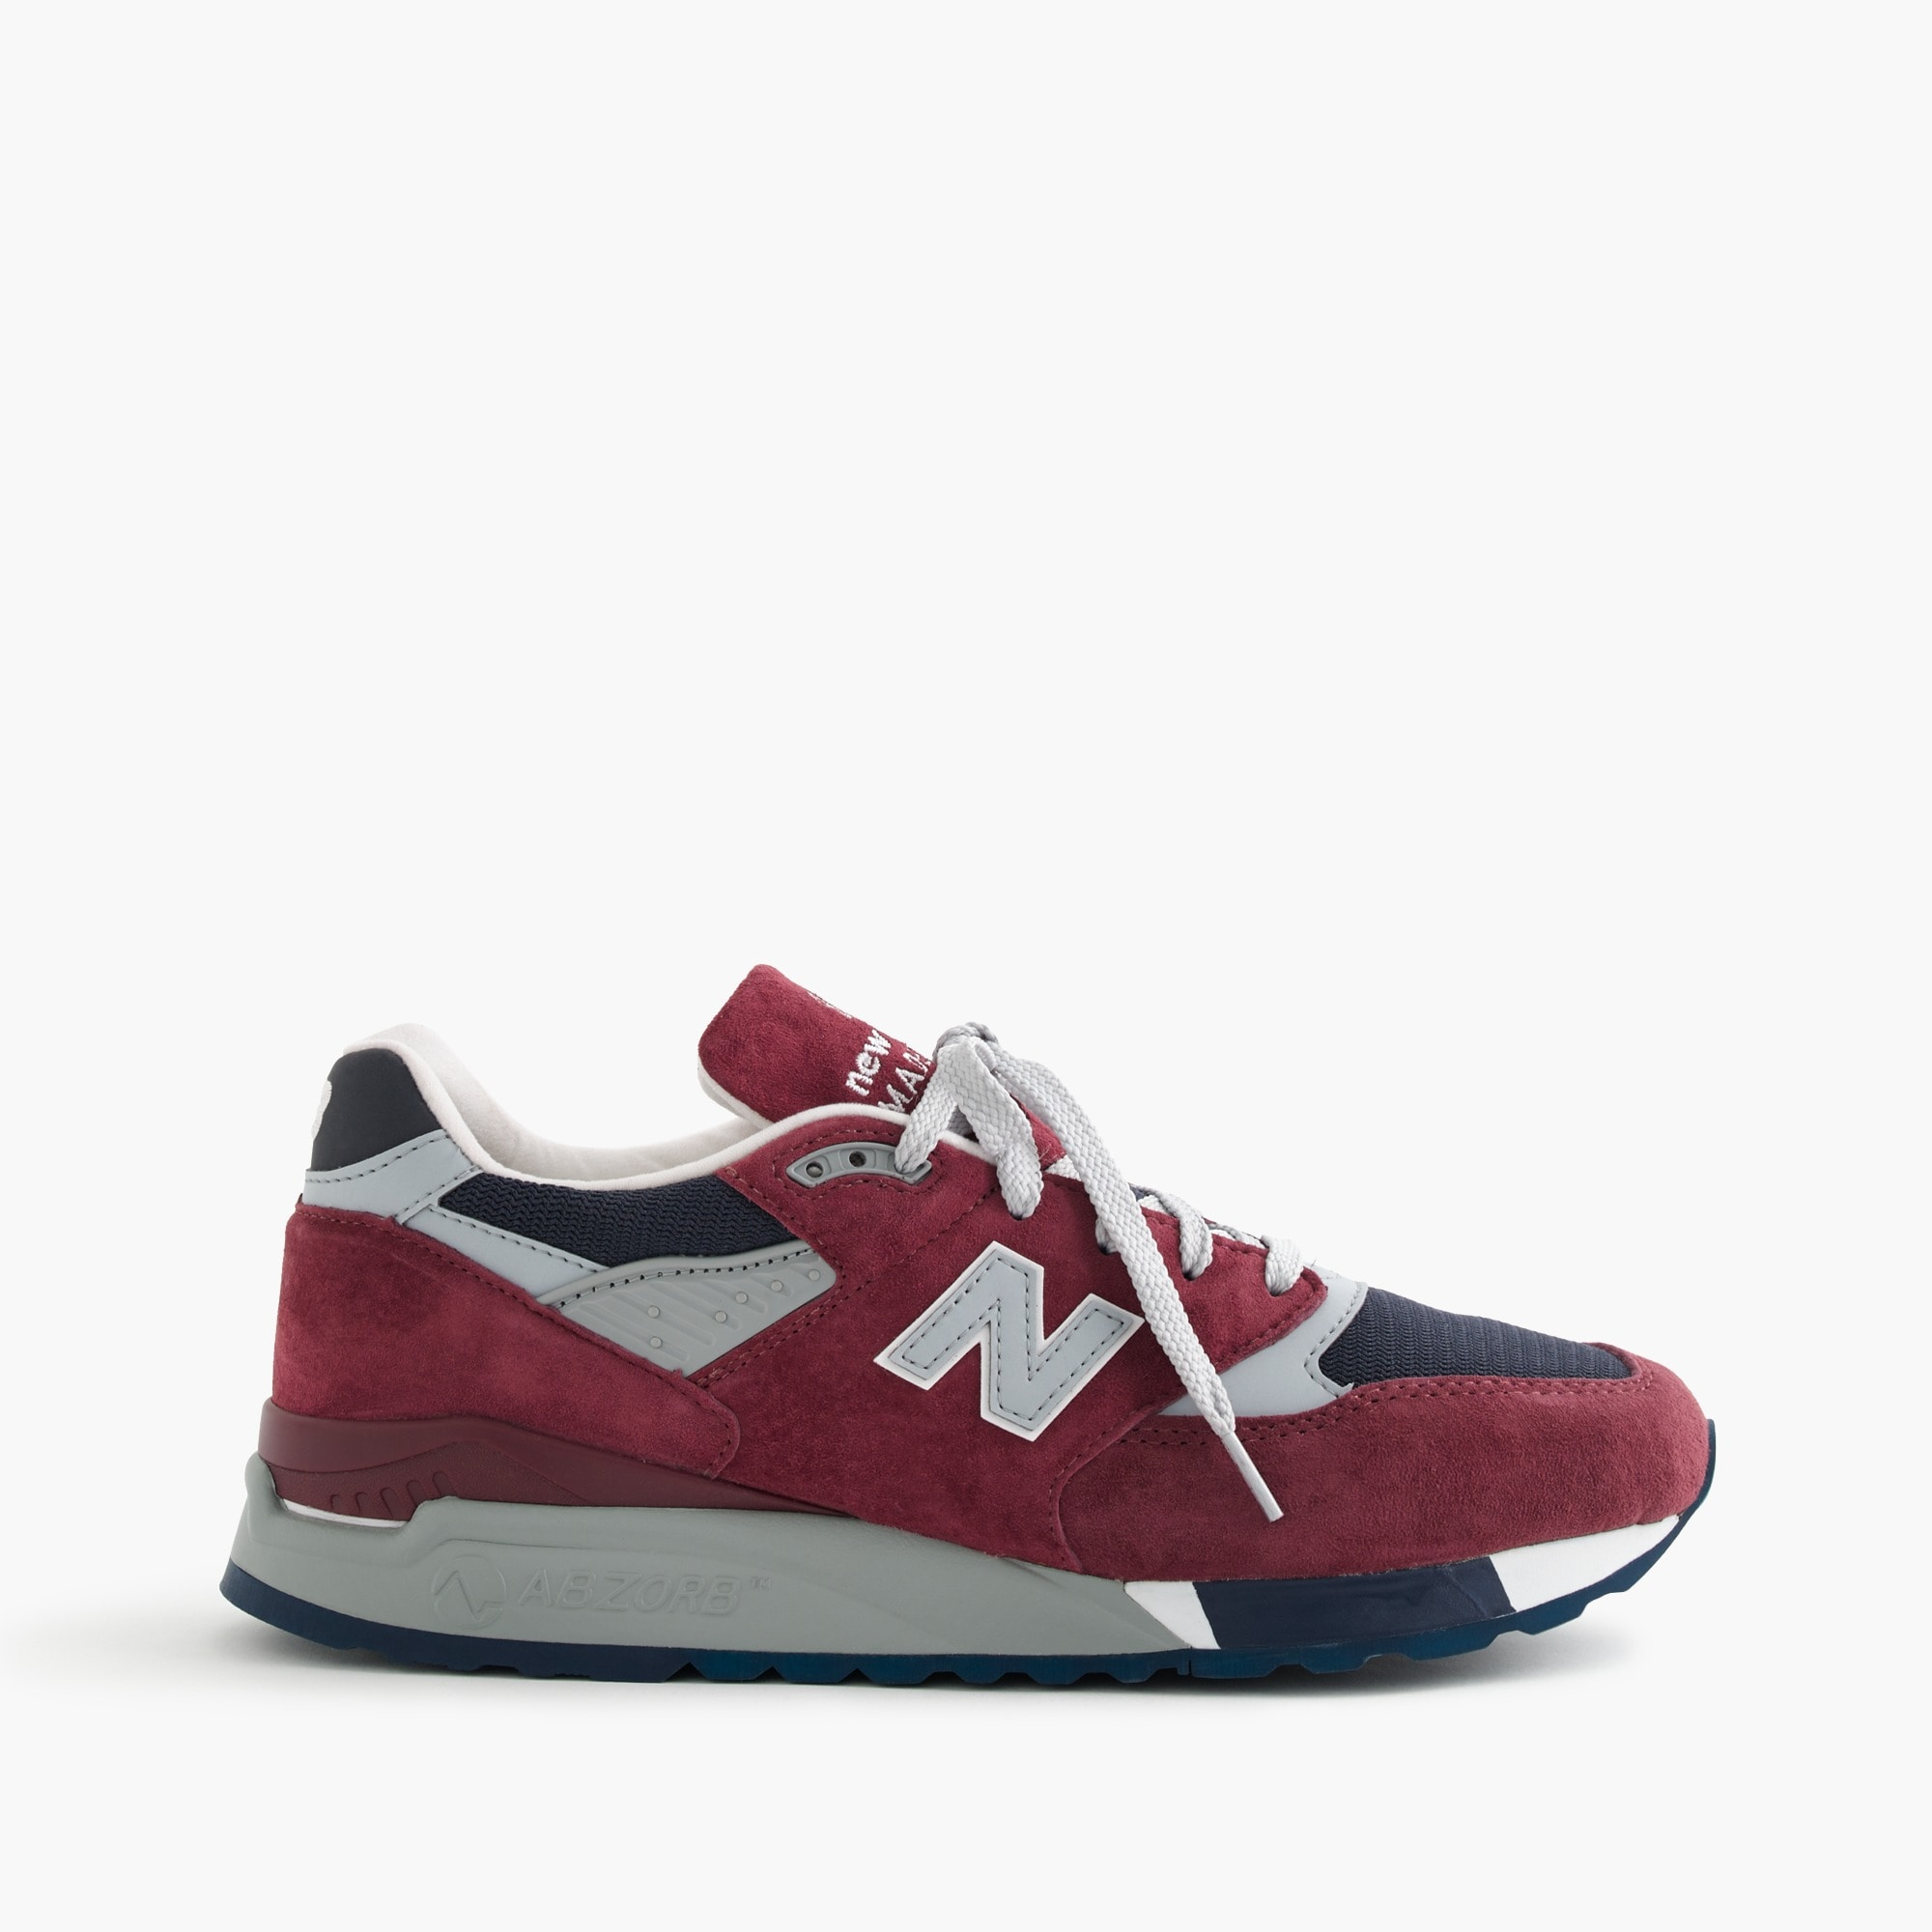 new balance for j.crew 998 port sneakers : men's sneakers